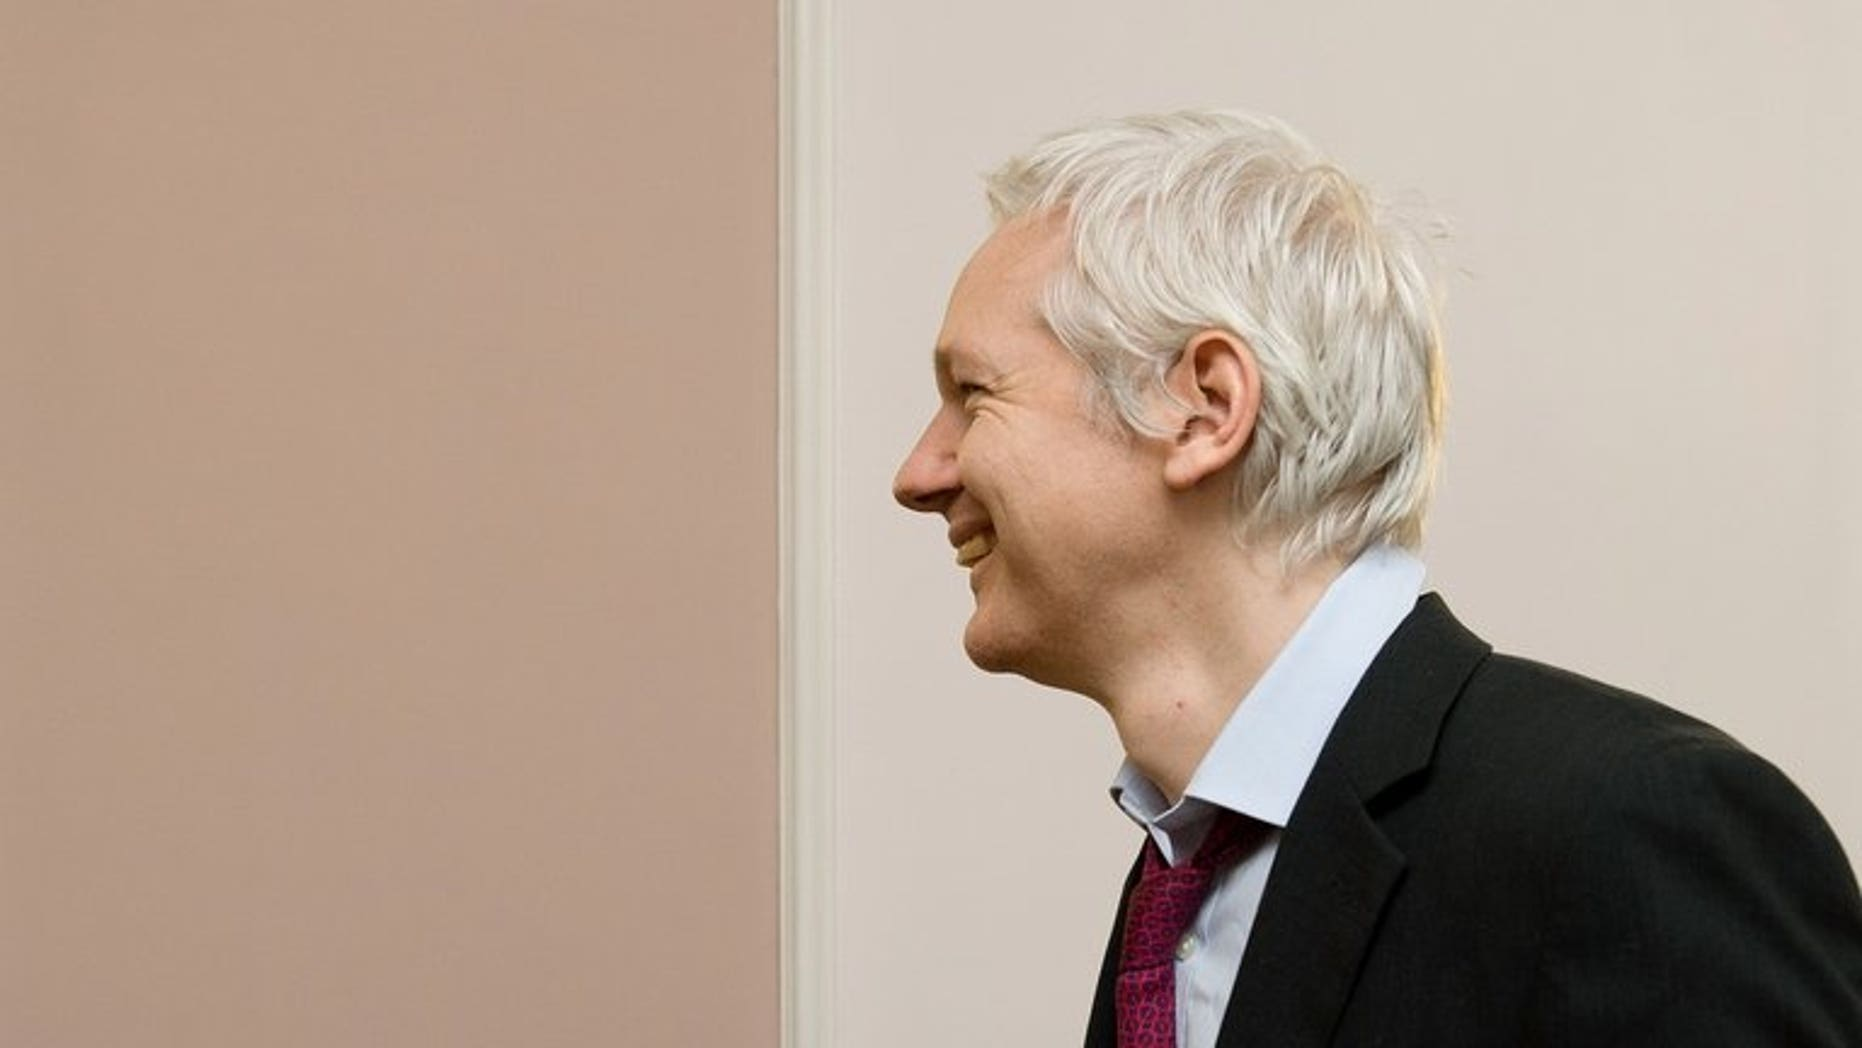 """Wikileaks founder Julian Assange arrives for a photocall with French politician Jean Luc Melenchon inside the Ecuadorian embassy in central London, on December 6, 2012. A year after seeking refuge at the Ecuadorian embassy in London, Assange remains fearful of US """"revenge"""" over the WikiLeaks disclosures and aware that the diplomatic deadlock over his case may continue for months, if not years."""